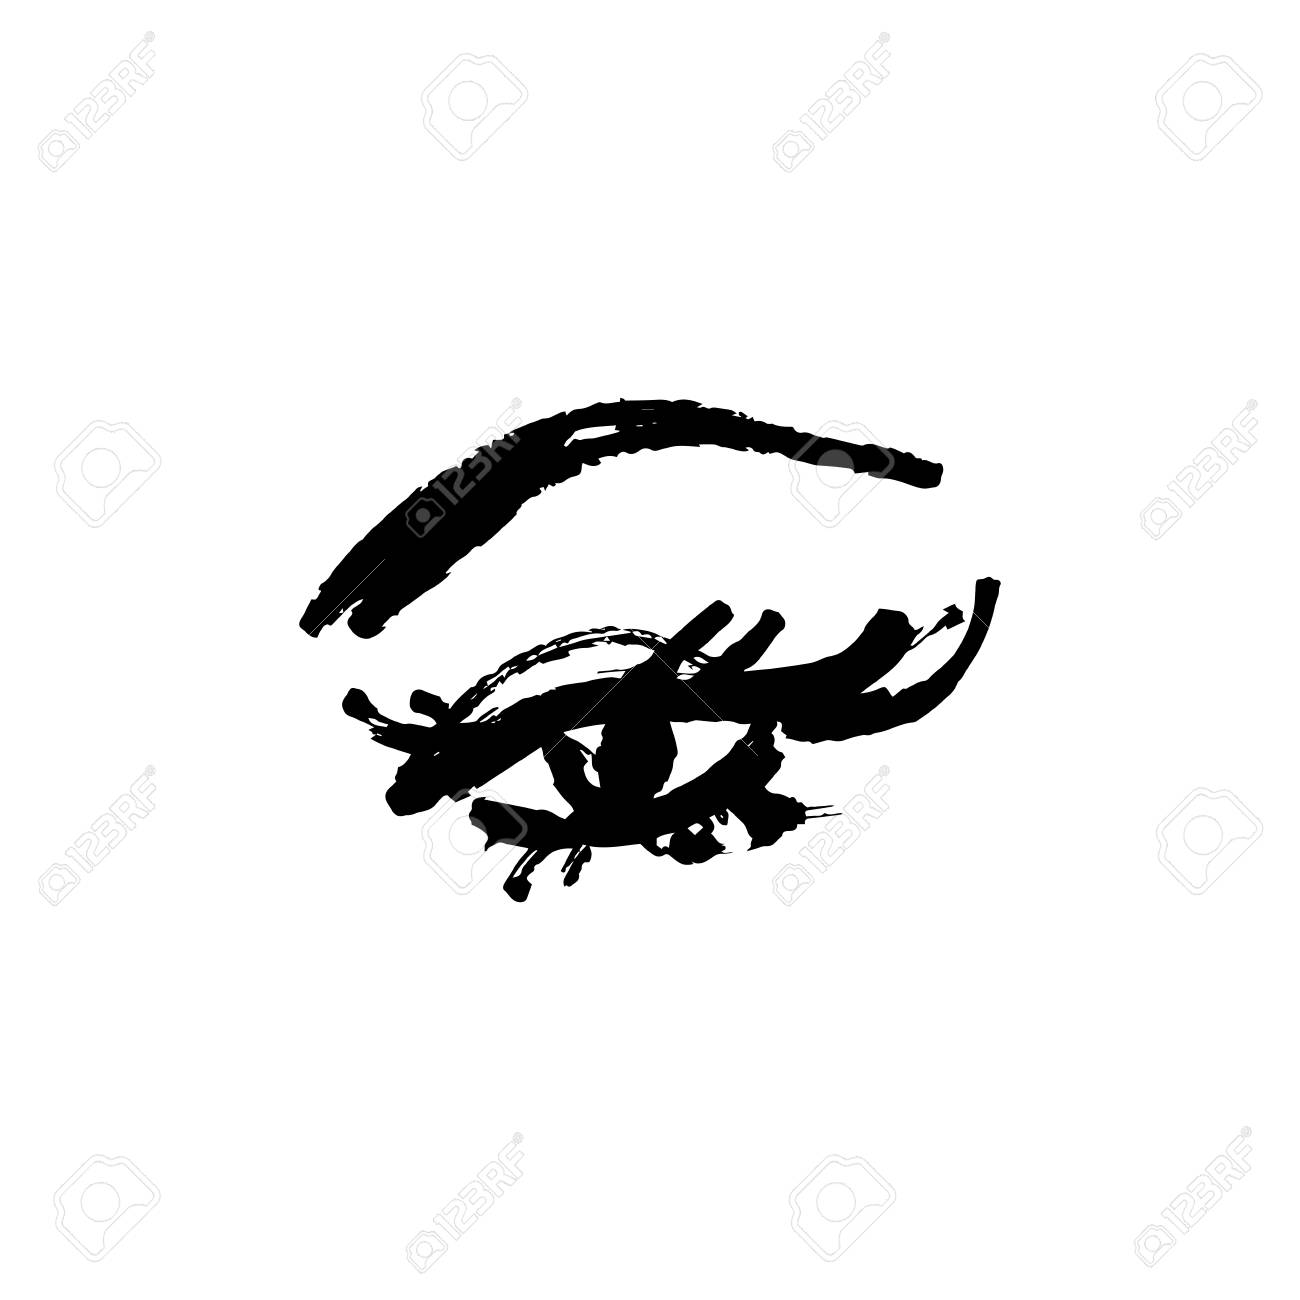 Eye and yelashes logo. Stylized hand drawn art. Abstract black and white vector illustration - 115939764